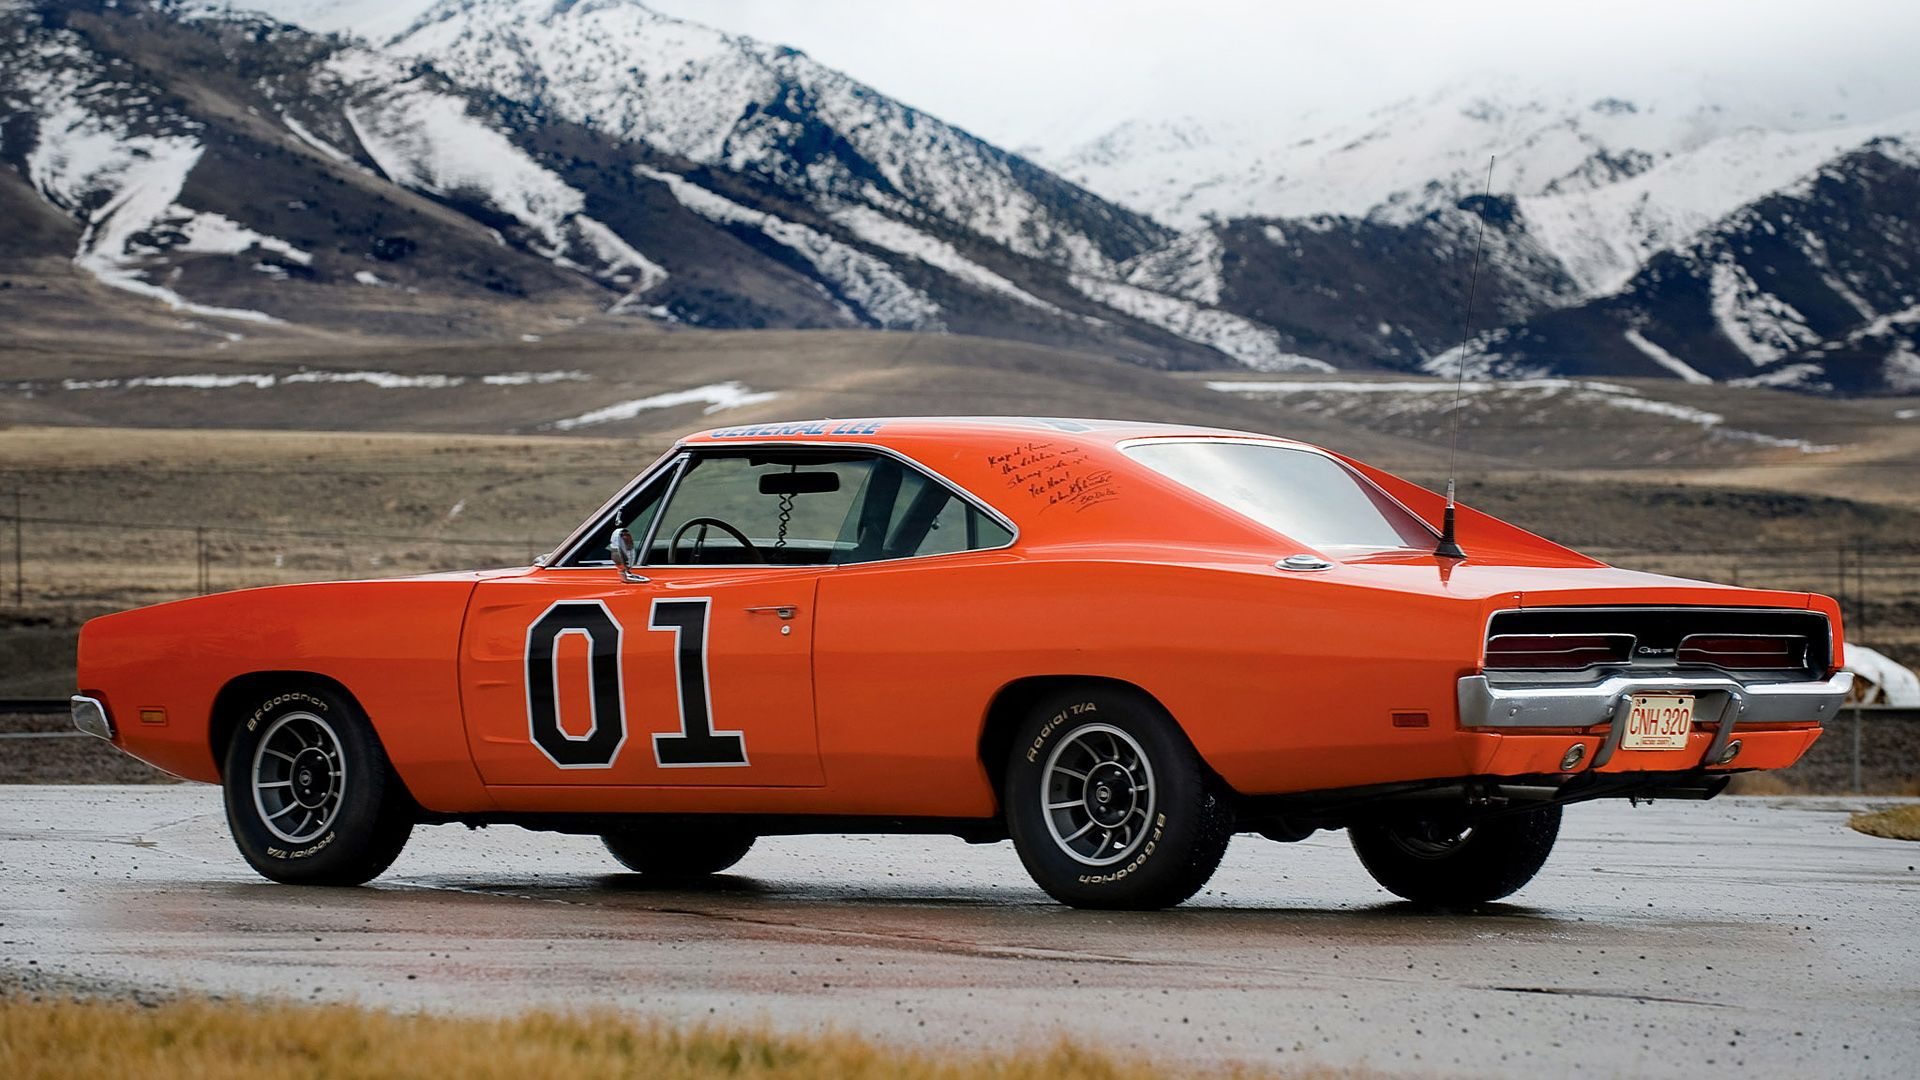 1969 Dodge Charger General Lee Wallpapers Hd Images Wsupercars Dodge Charger 1969 Dodge Charger Mopar Cars